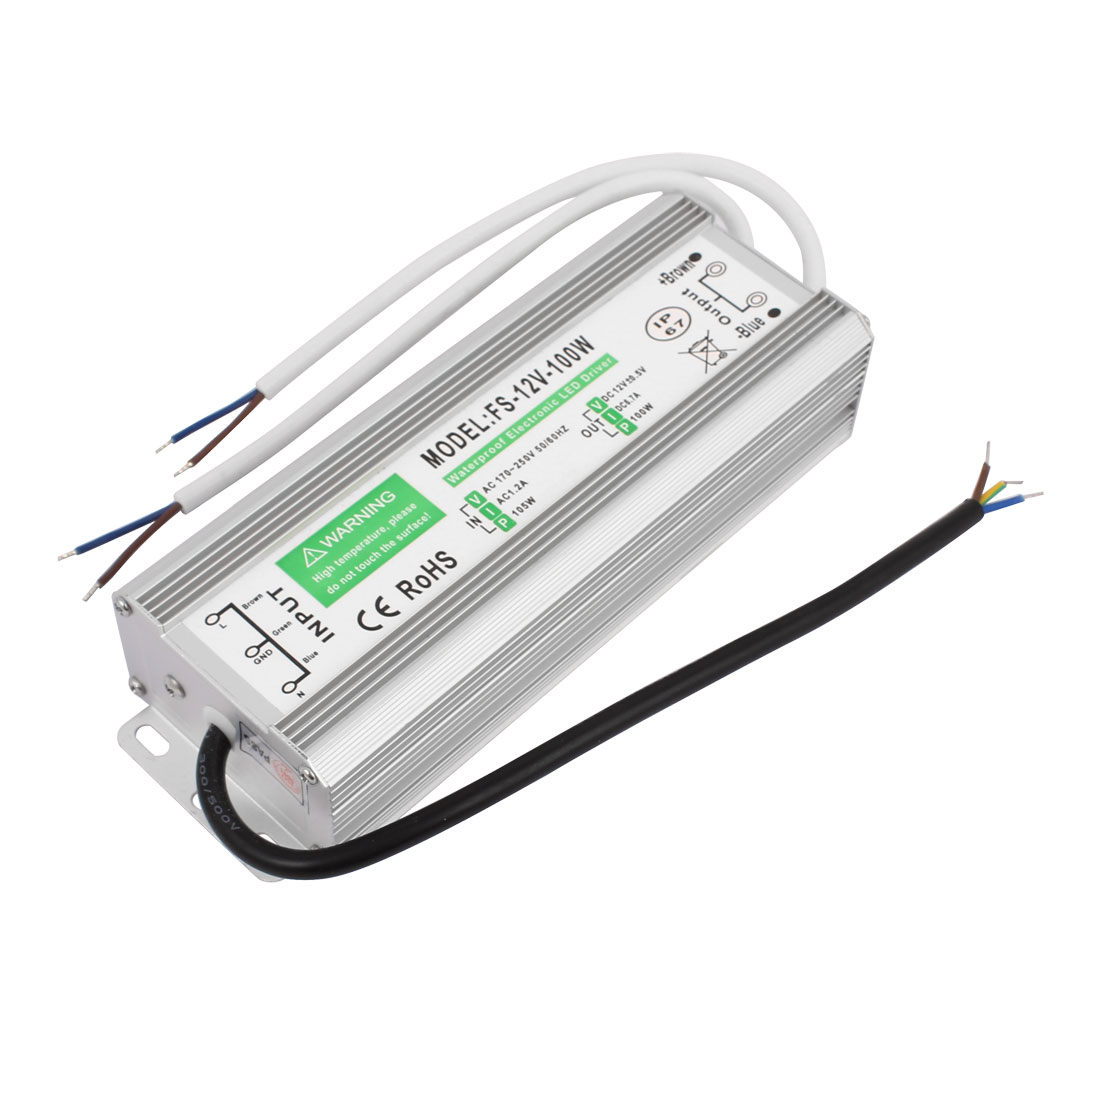 Waterproof Electronic LED Driver Transformer AC170-250V 1.2A to DC12V 6.7A